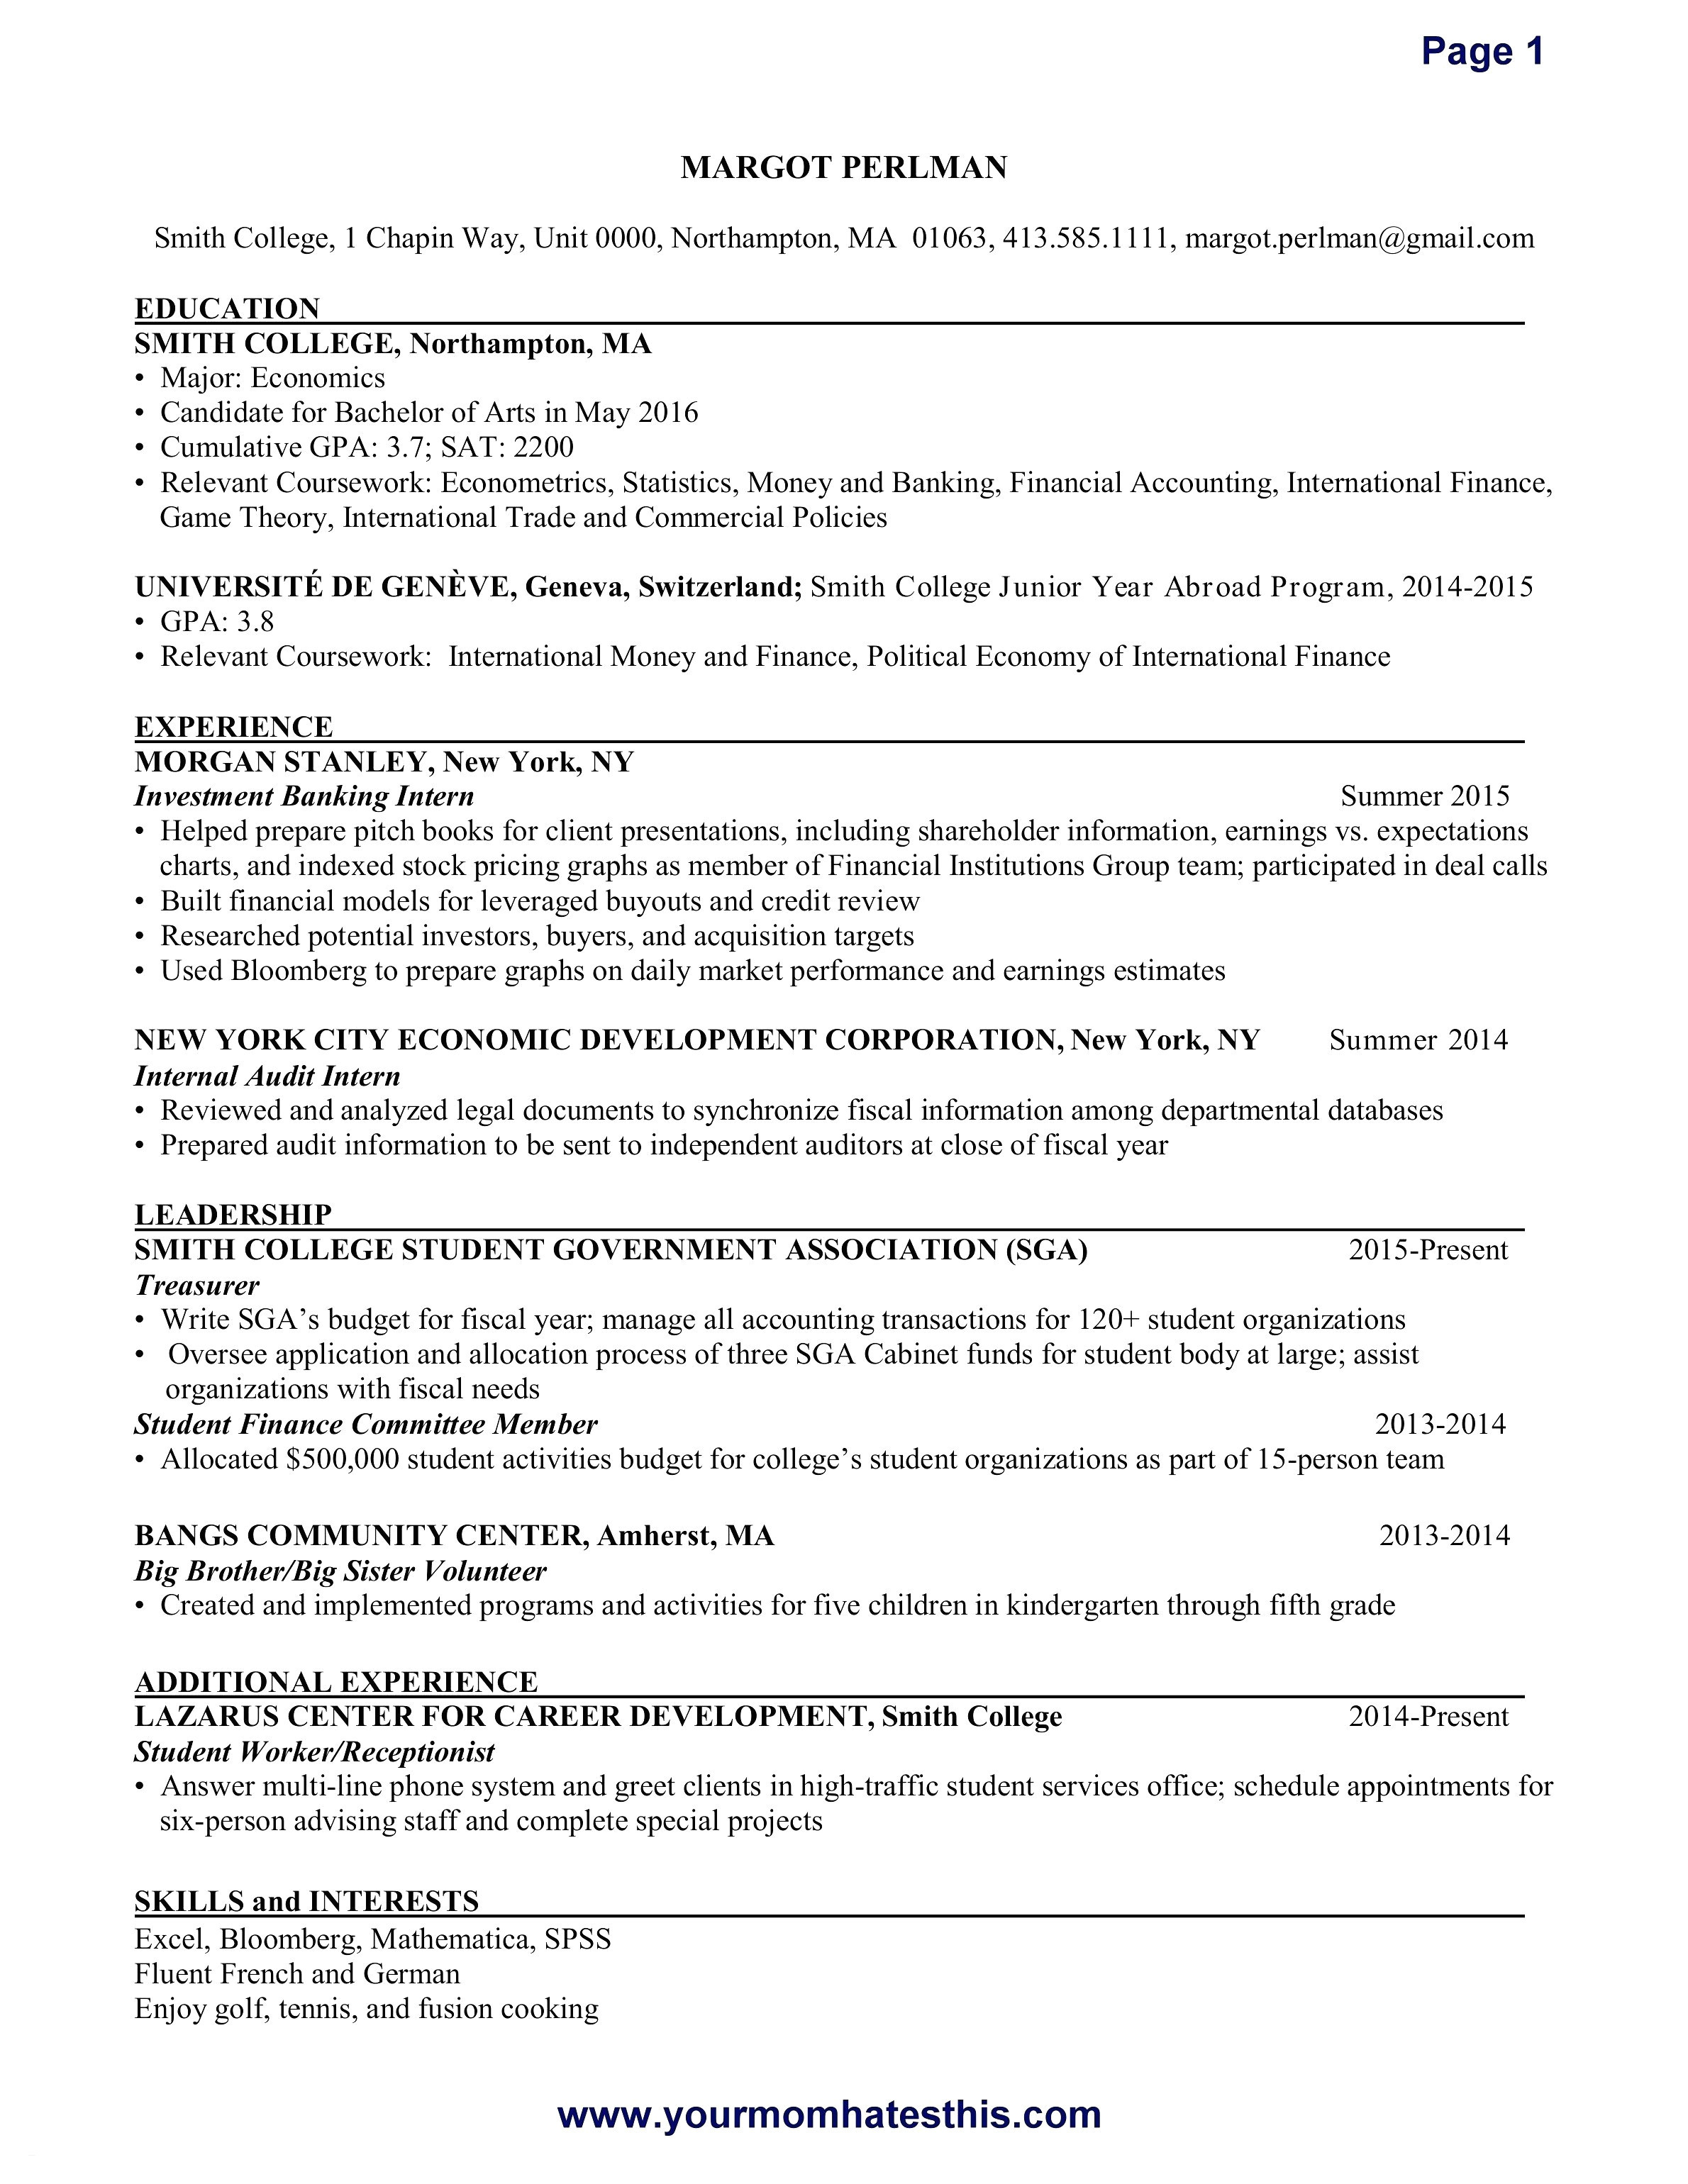 german resume template example-Awesome Security ficer Resume Sample 19-g